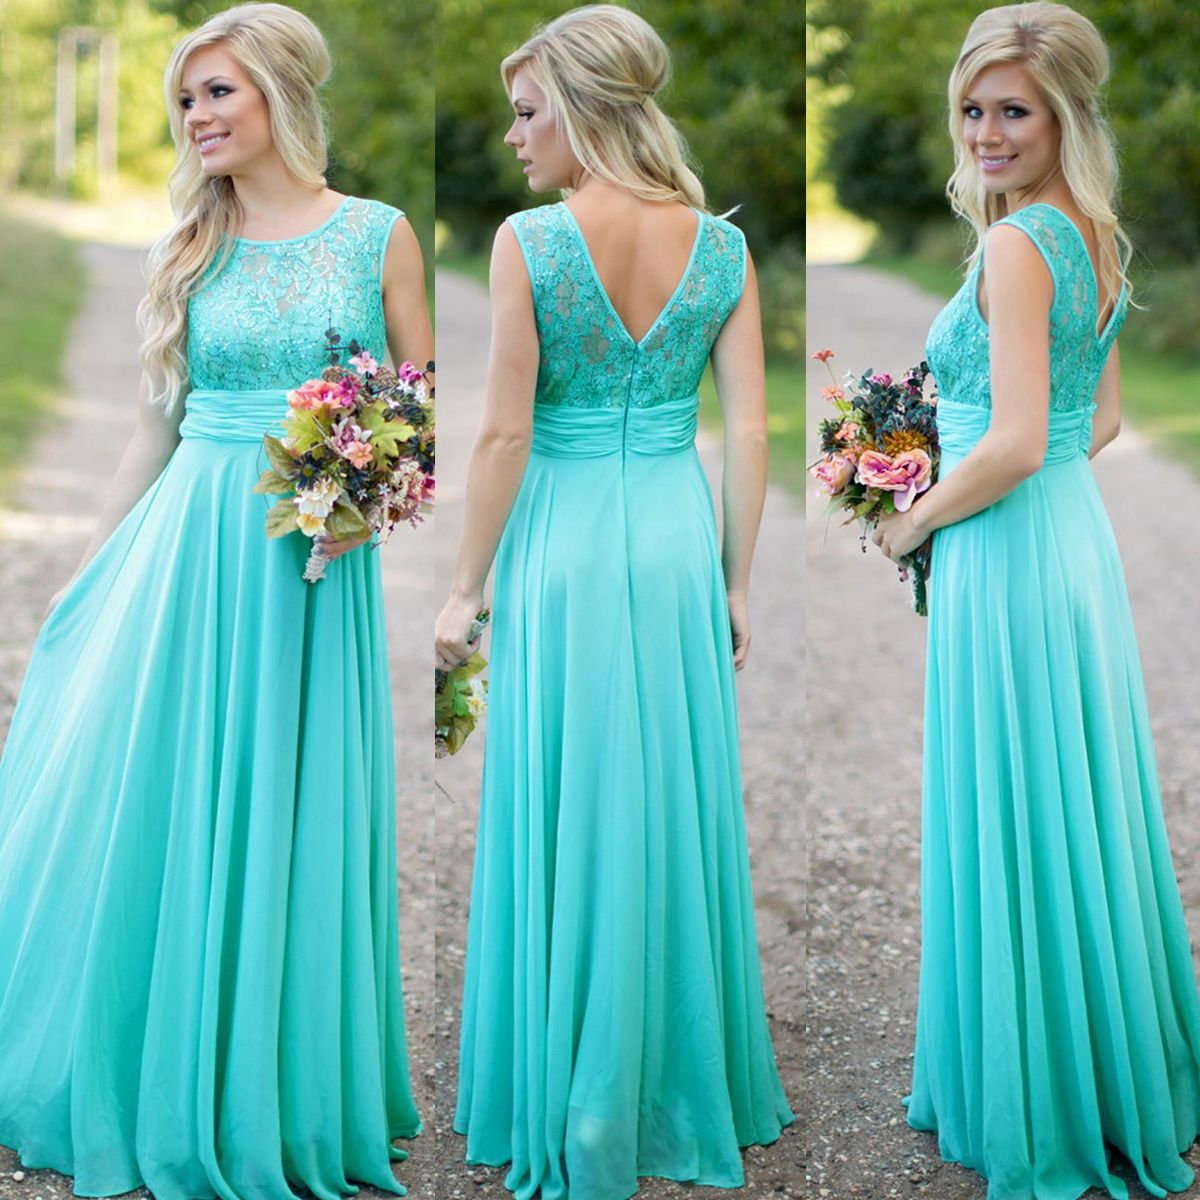 Pin by Jenna Gruidl-Cofield on Weddings! | Pinterest | Party dresses ...